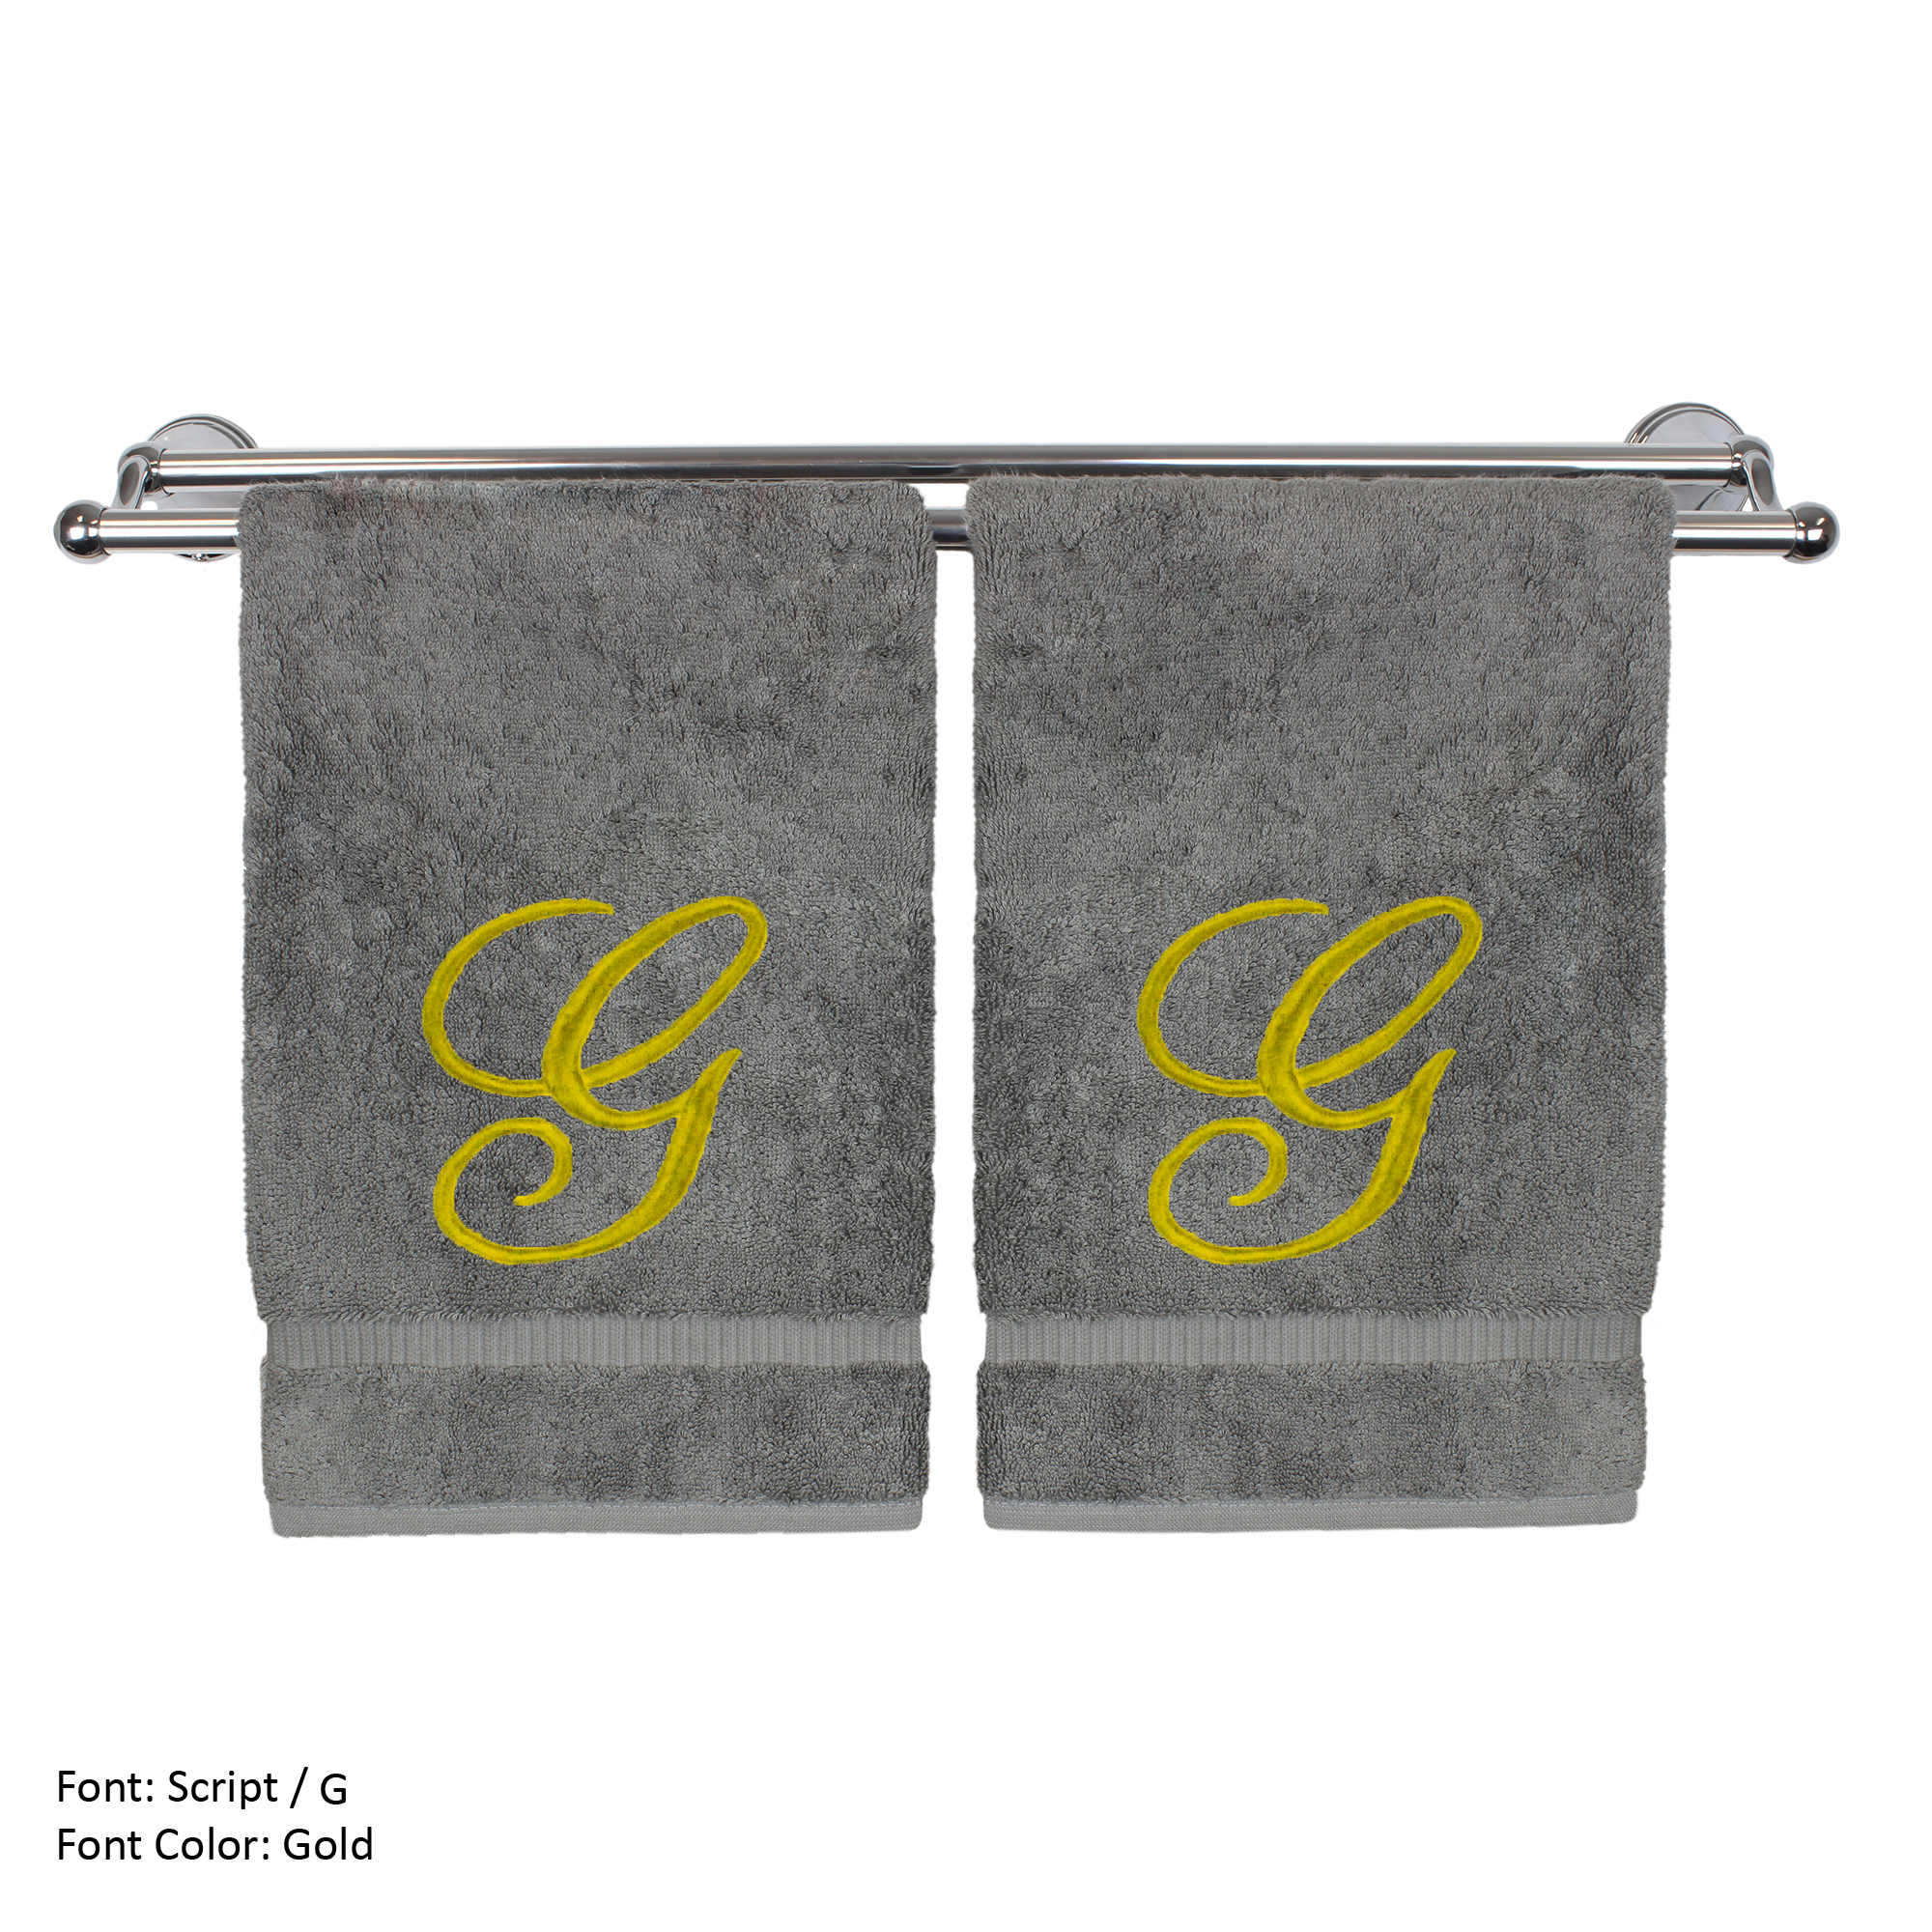 Monogrammed Washcloth Towel, Personalized Gift, 13x13 Inches - Set of 2 - Gold Script Embroidered Towel - Extra Absorbent 100% Turkish Cotton - Soft Terry Finish - Initial G Gray Towels